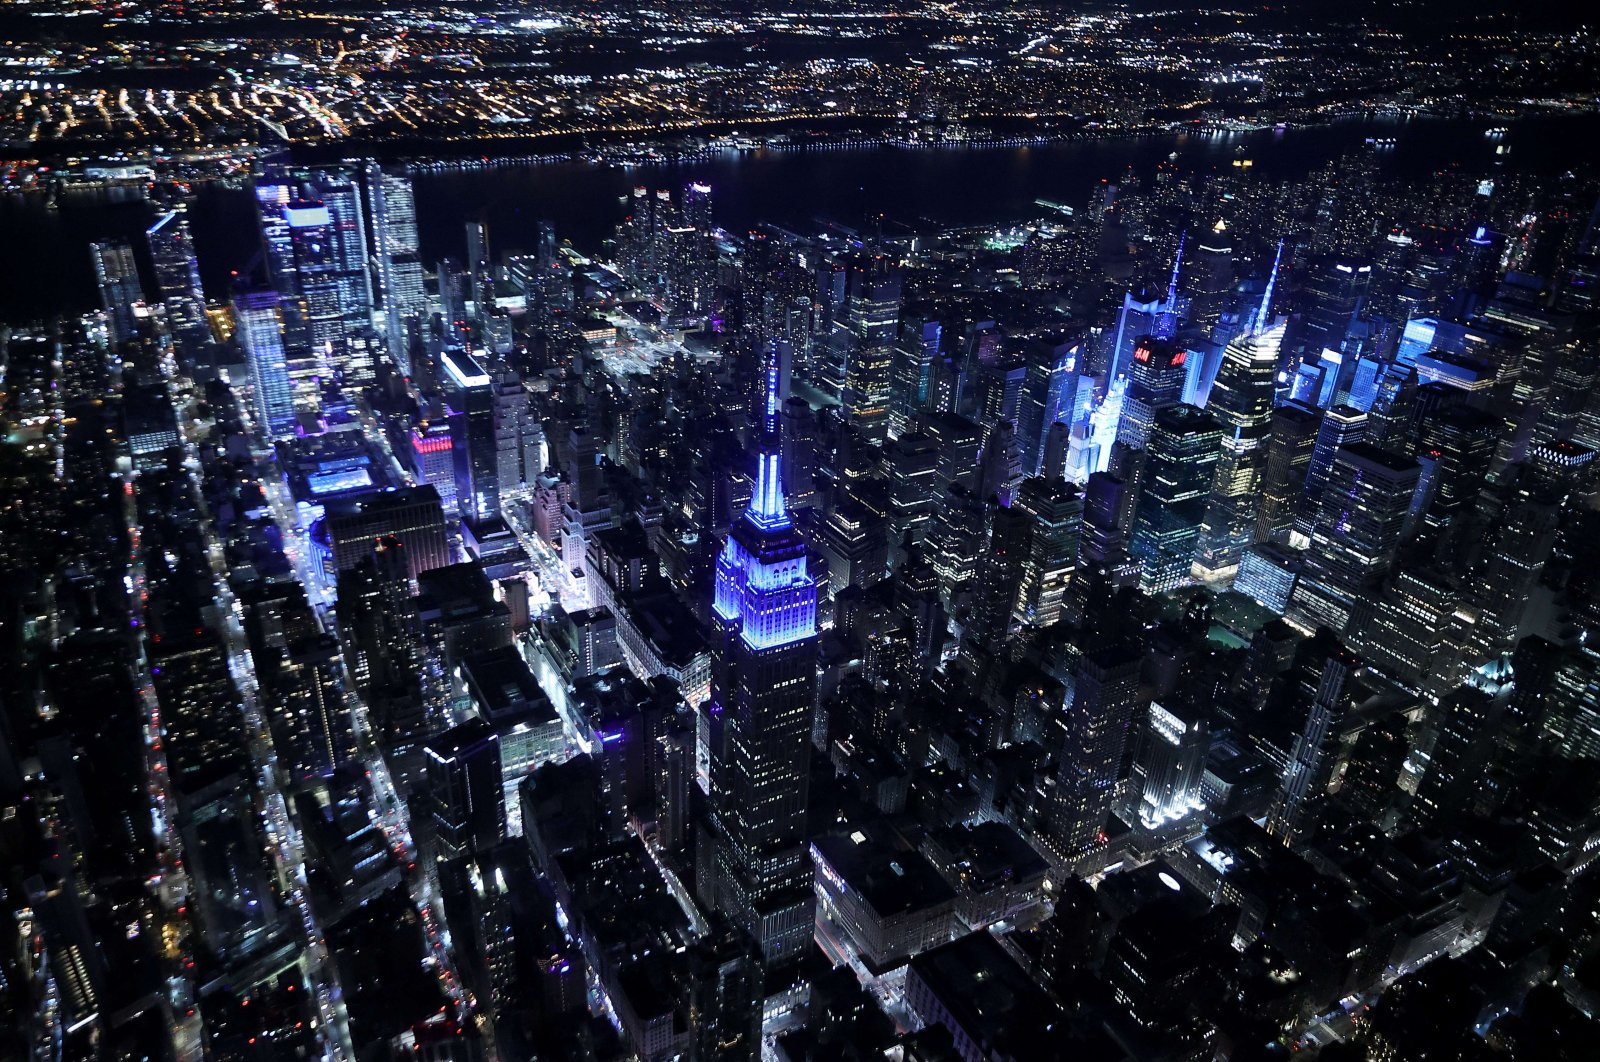 Buildings in Midtown Manhattan are bathed in blue light in commemoration of the 20th anniversary of the 9/11 terror attacks, New York City, the U.S., Sept. 11, 2021. (Chip Somodevilla / Getty Images / AFP)